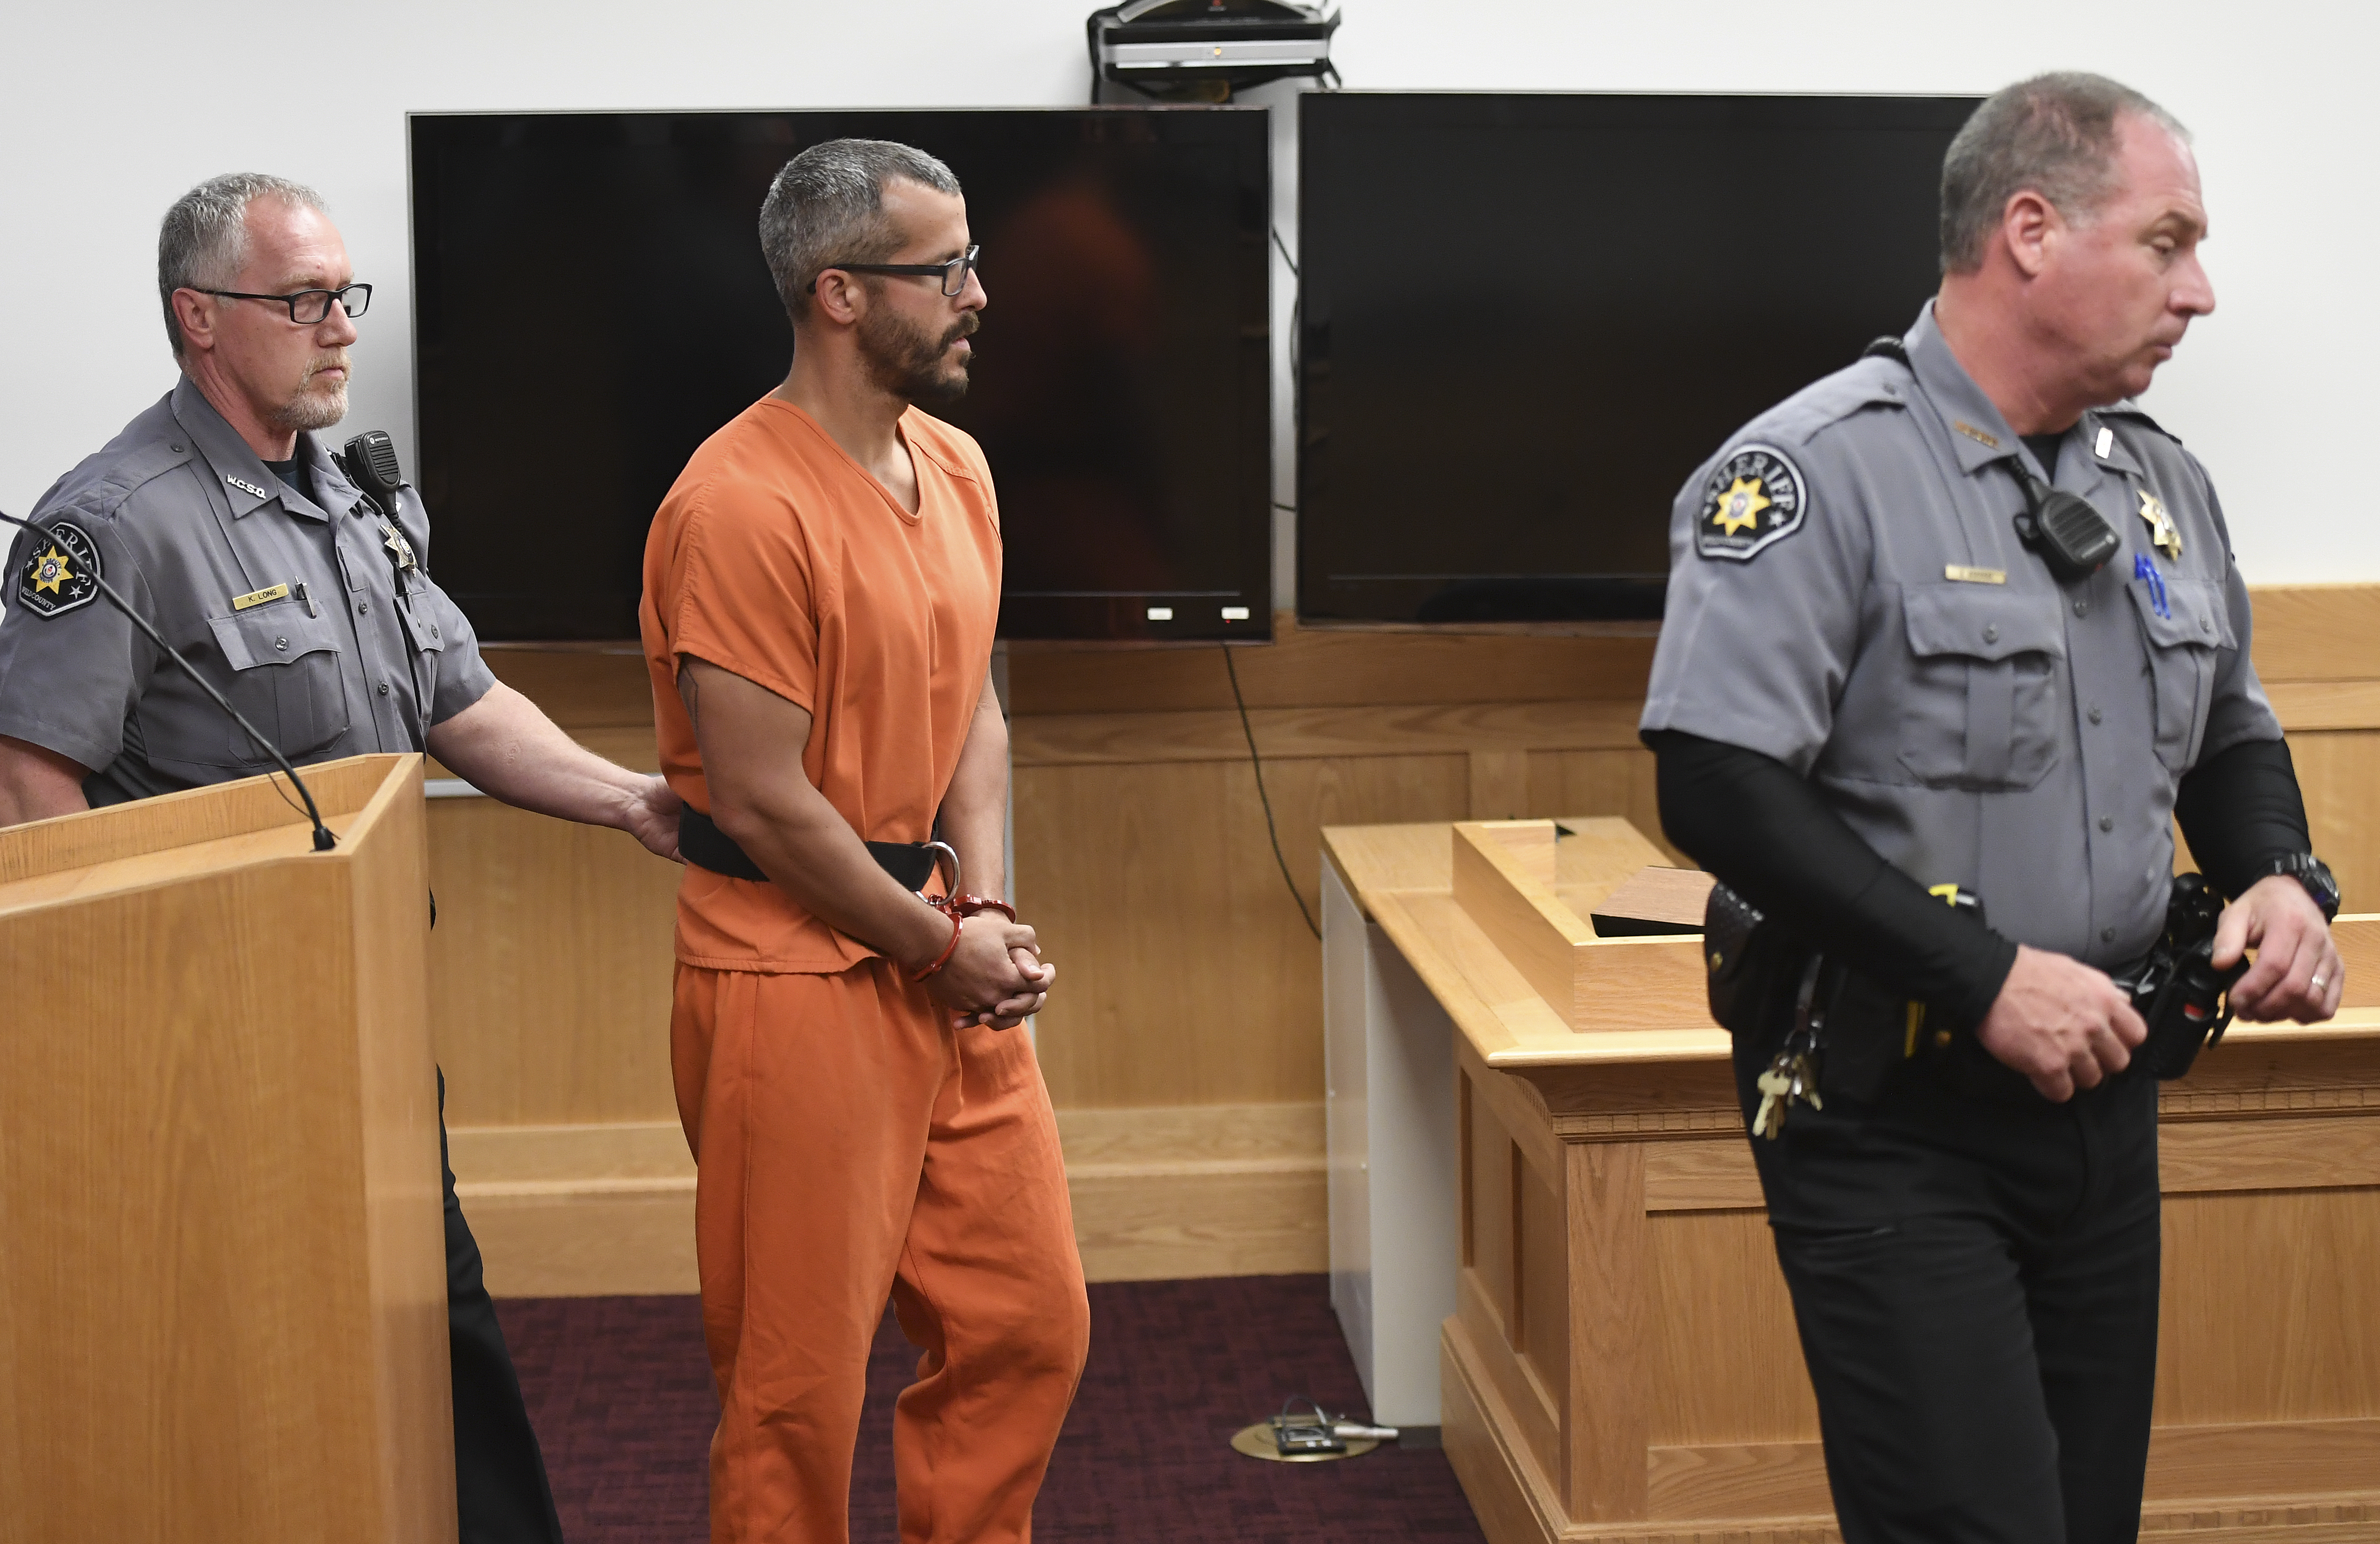 Christopher Watts is in court for his arraignment hearing at the Weld County Courthouse on August 21, 2018 in Greeley, Colorado. Watts faces nine charges, including several counts of first-degree murder of his wife and his two young daughters.